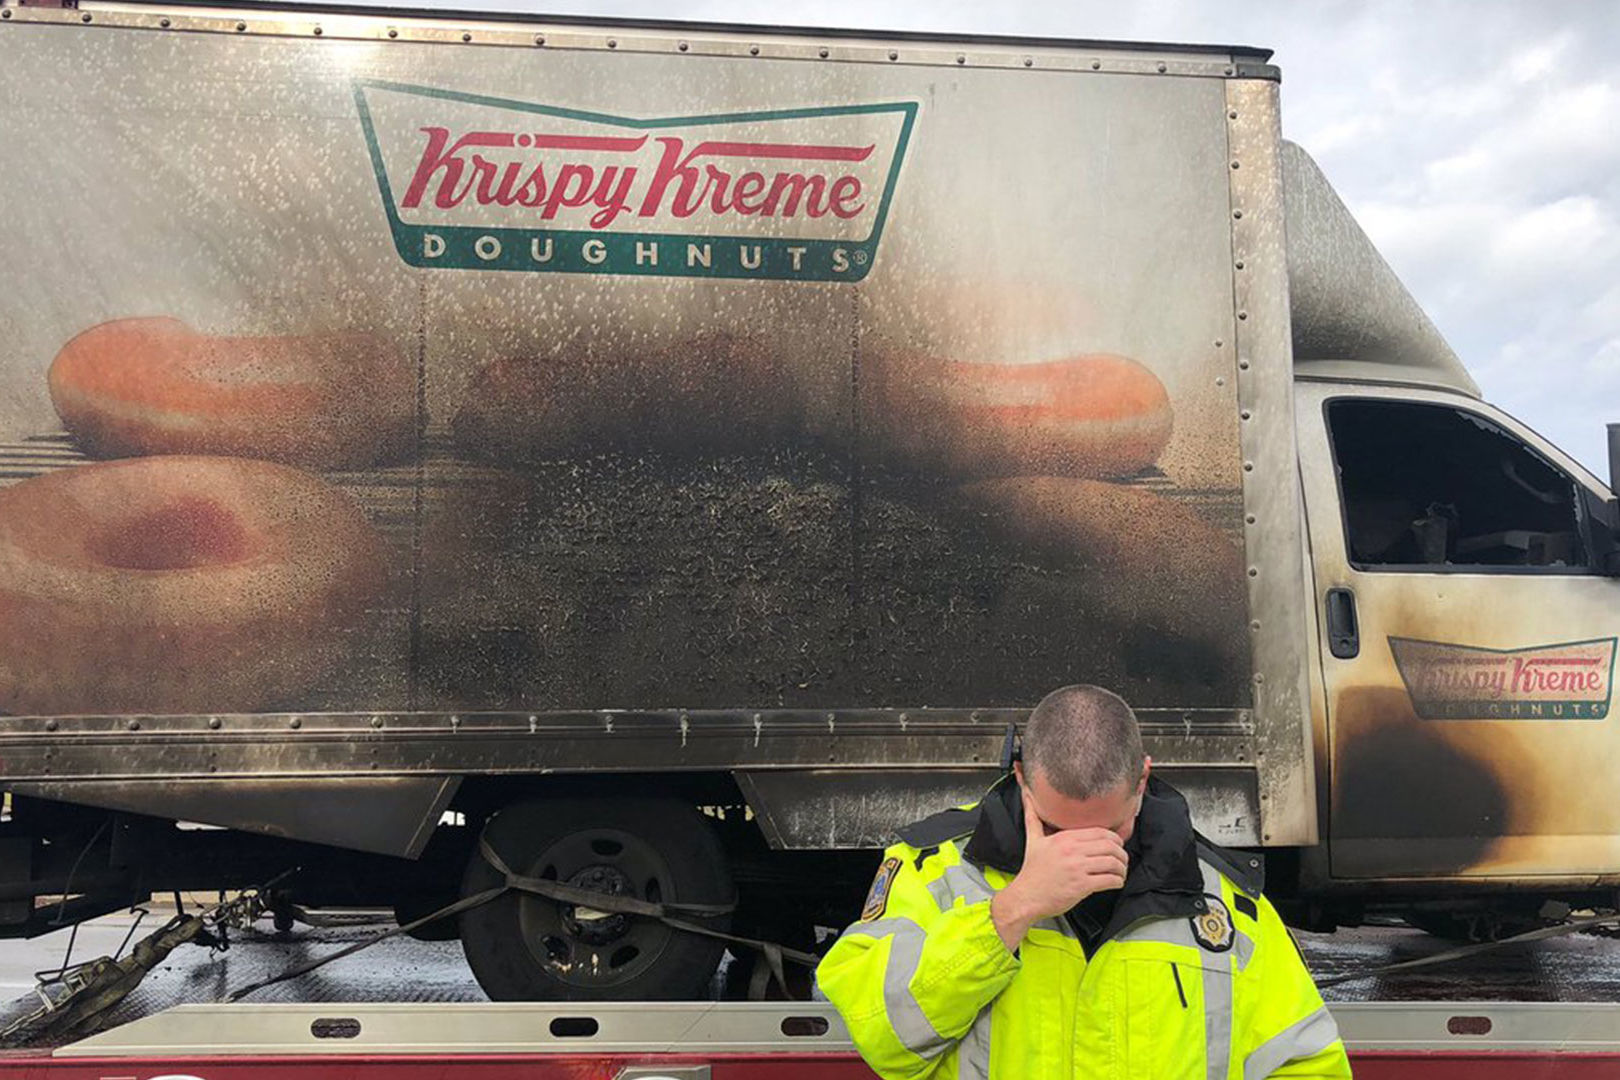 Kentucky Police Officers Hilariously Mourn Krispy Kreme Truck Destroyed in Fire